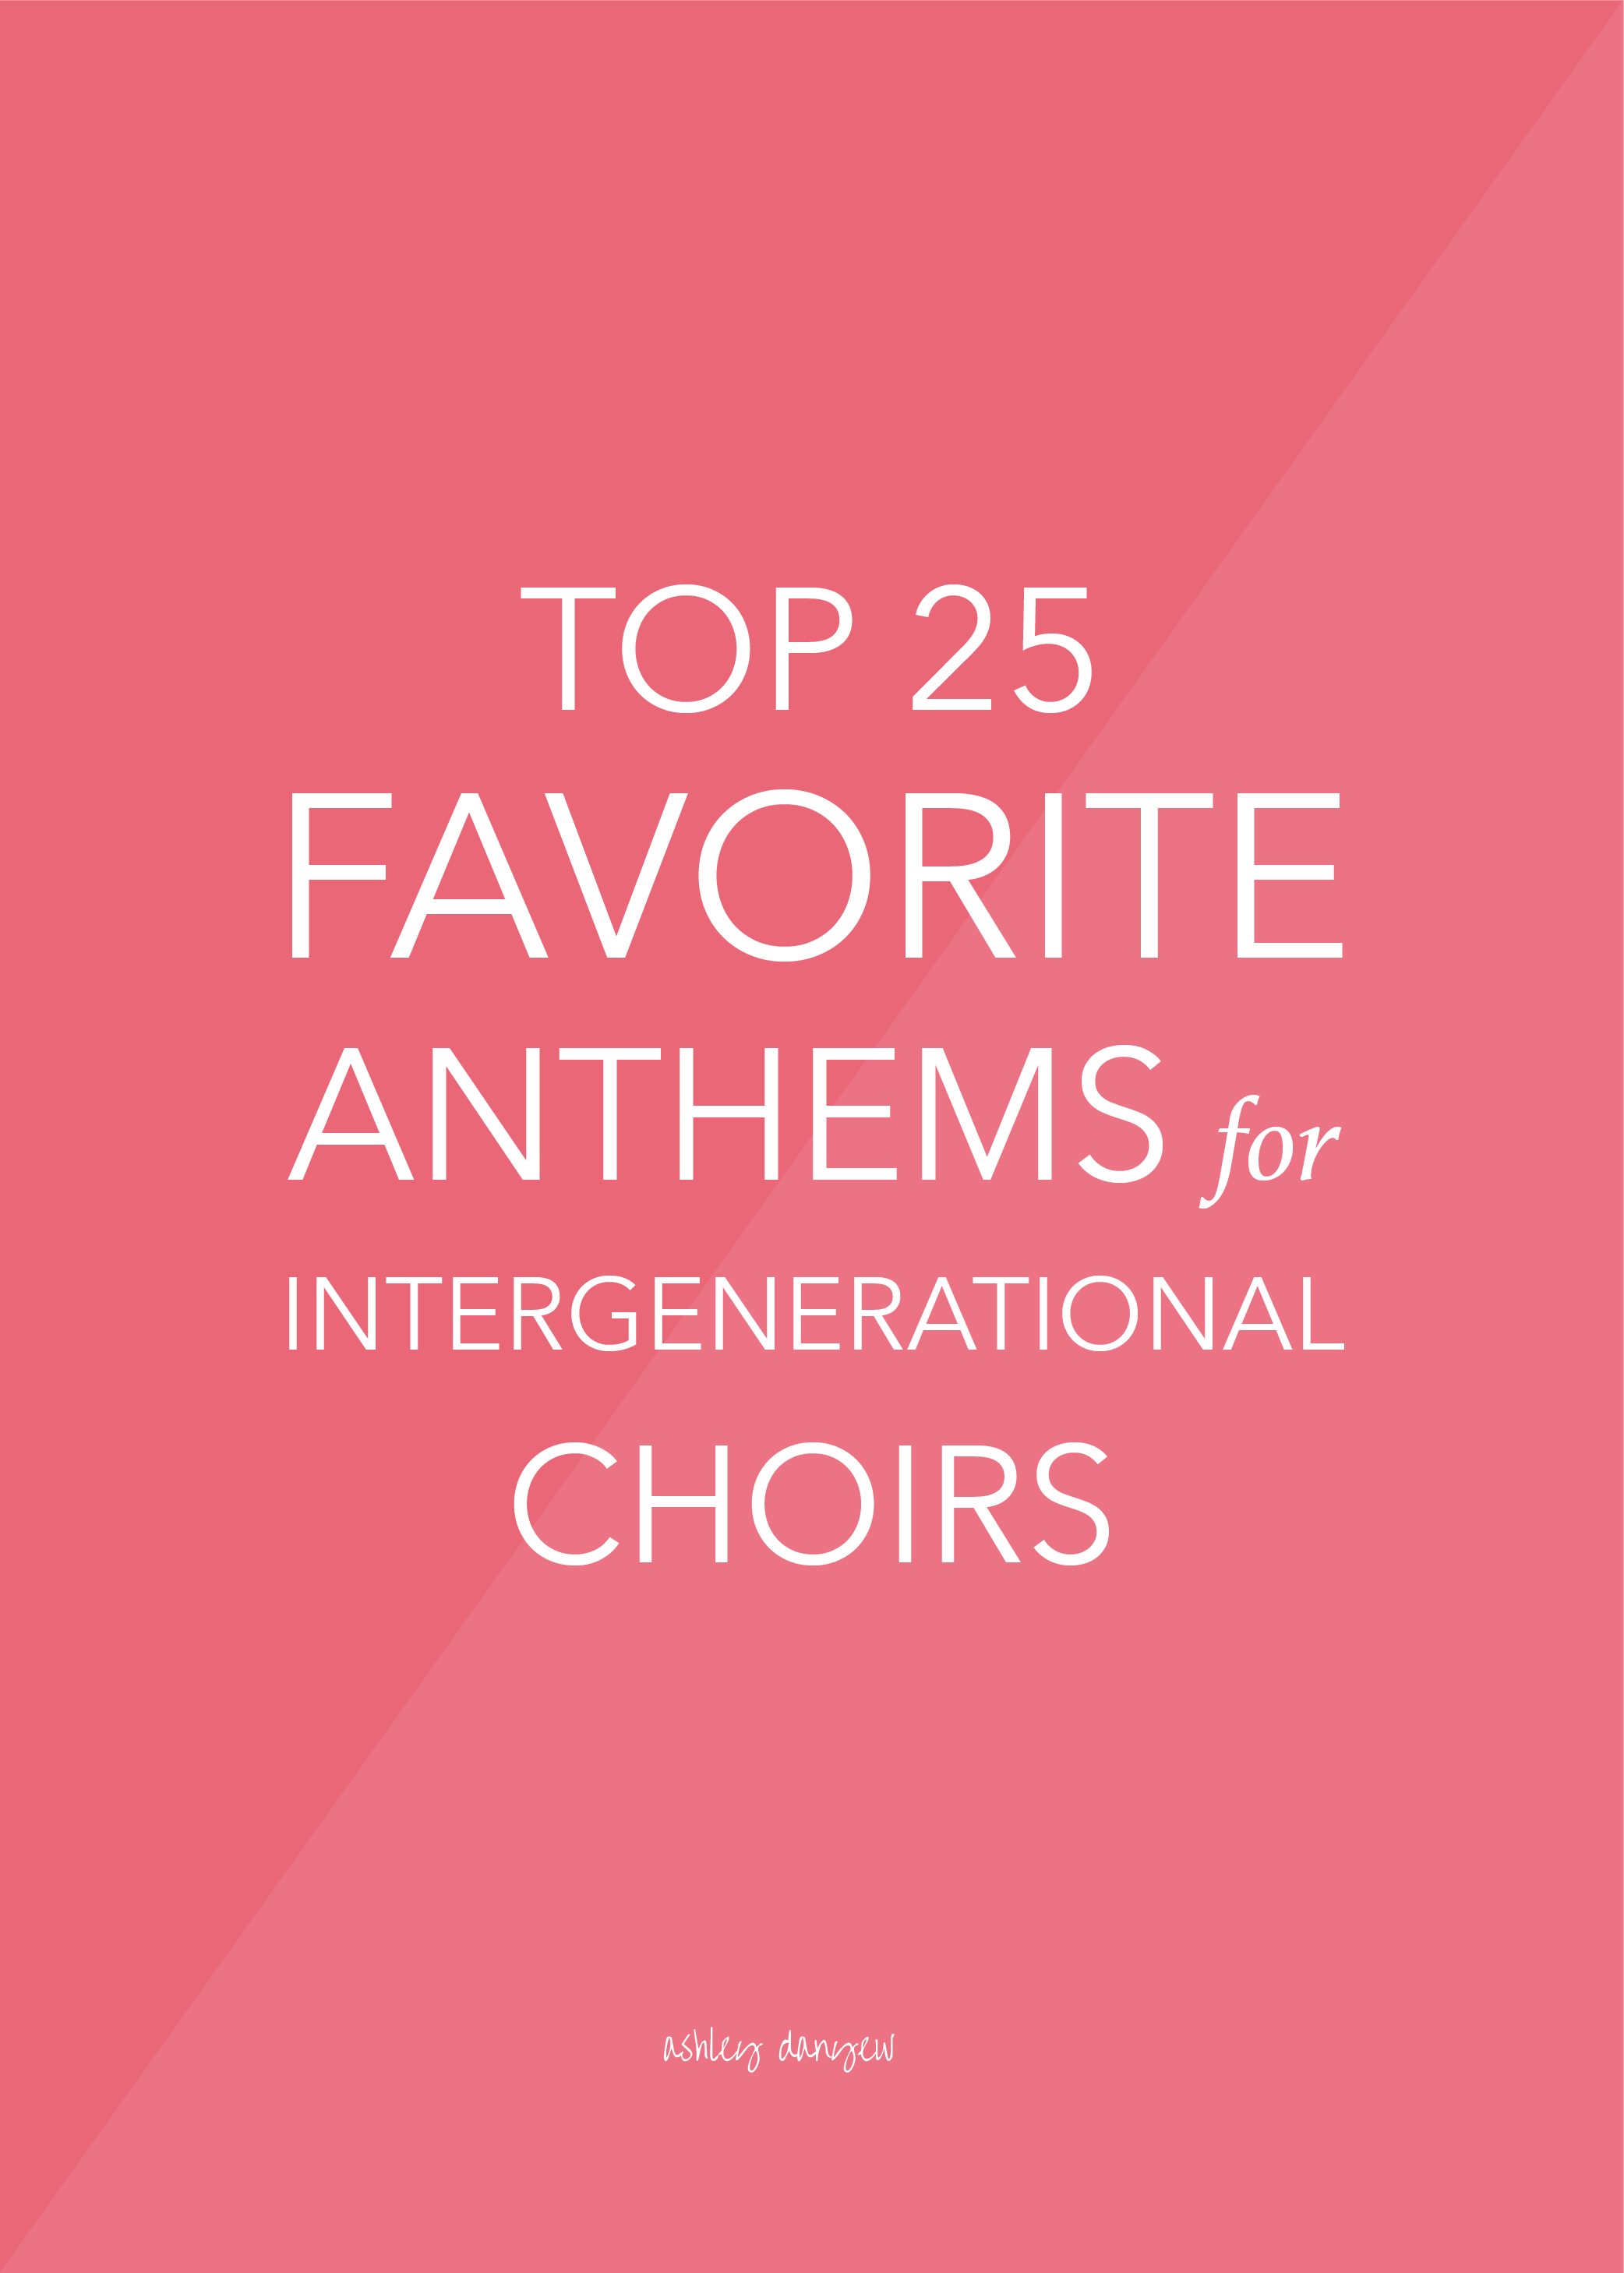 Top 25 Favorite Anthems for Intergenerational Choirs-13.png